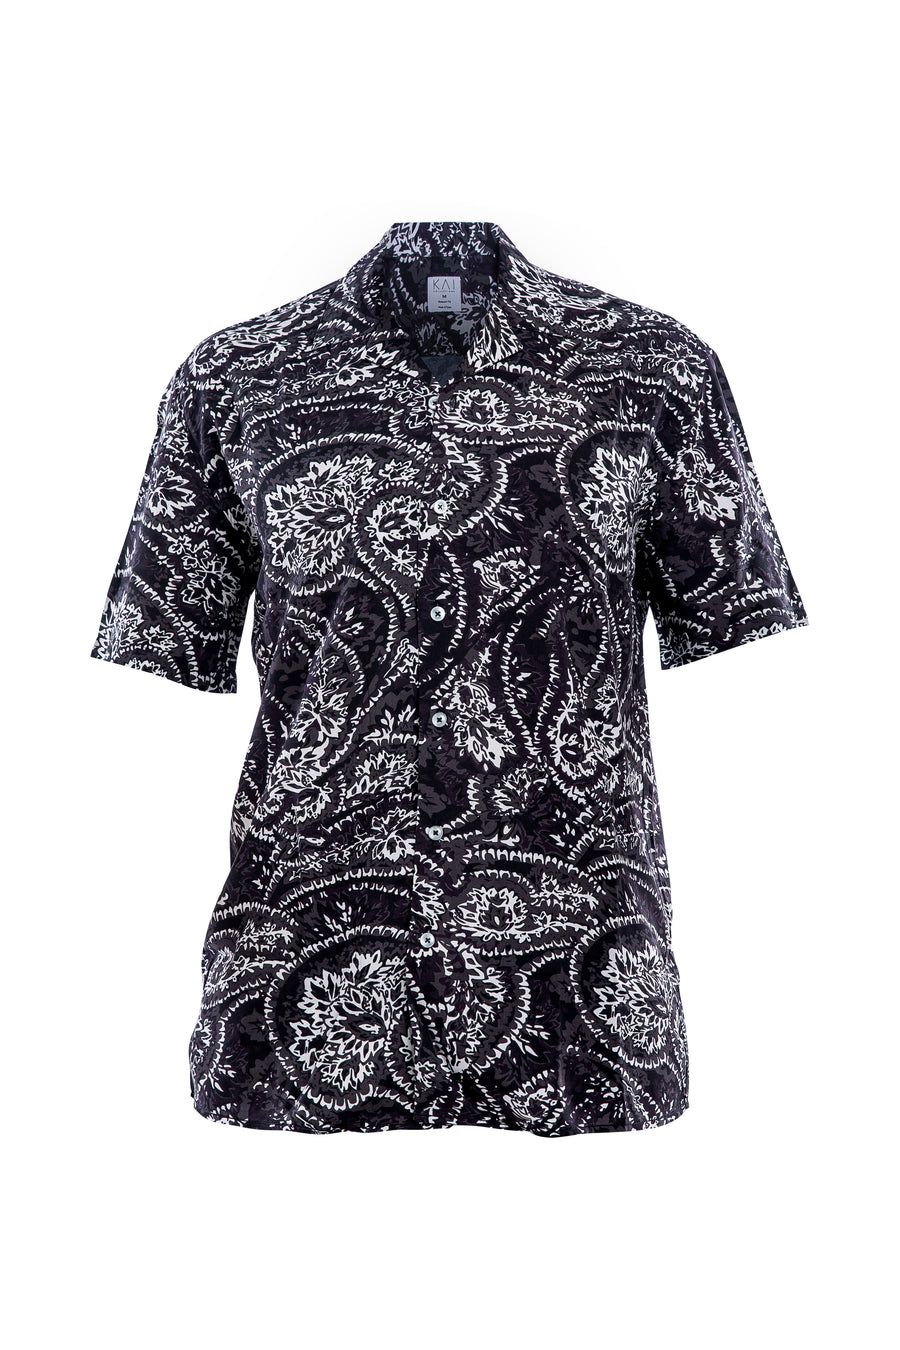 Black Paisley Shirt